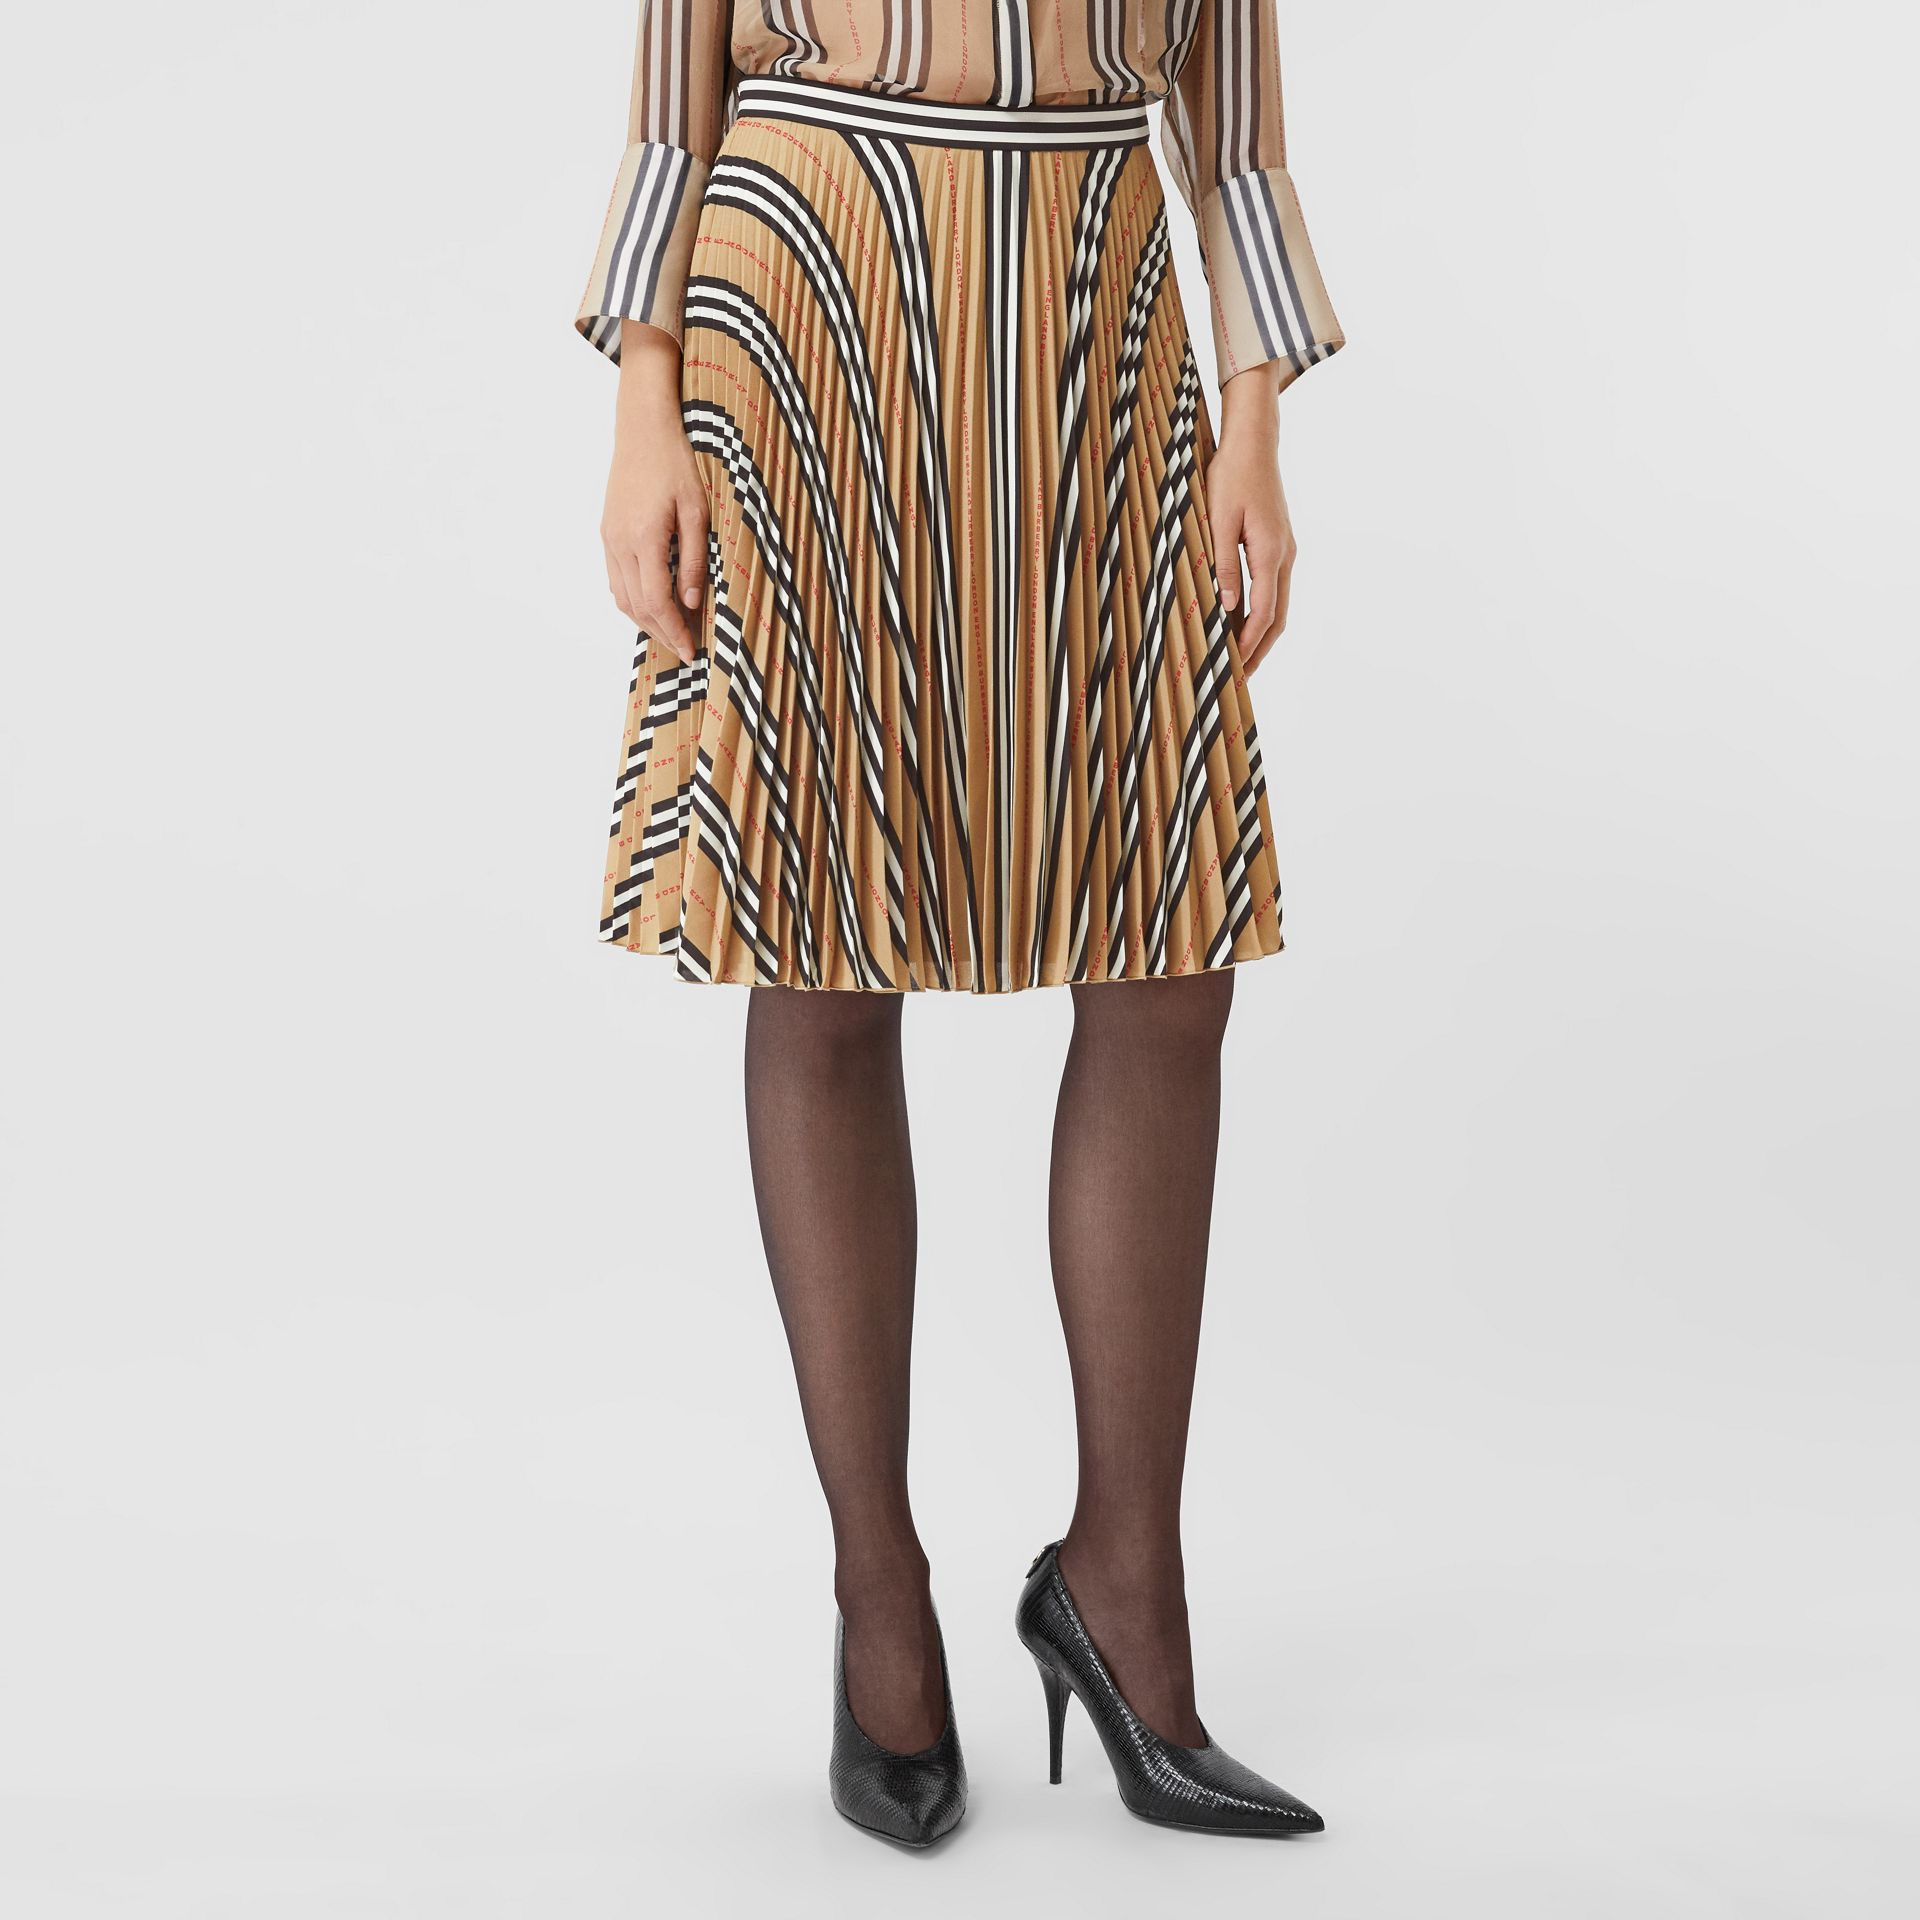 Logo and Stripe Print Crepe Pleated Skirt in Archive Beige - Women | Burberry - gallery image 4